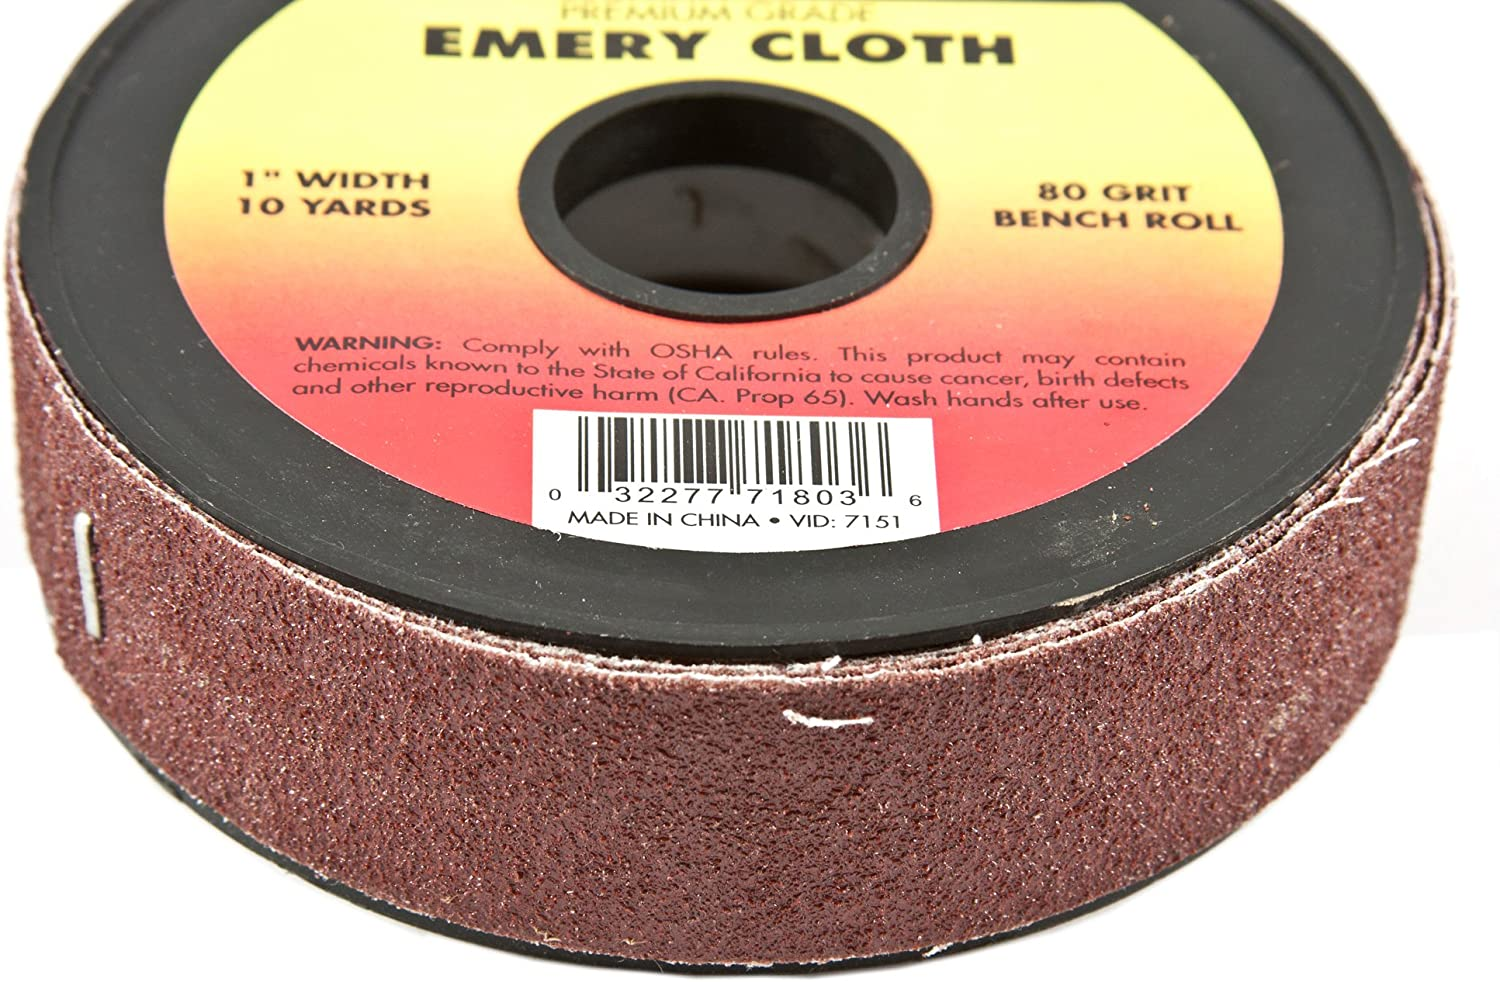 1-Inch-by-10-Yard Bench Roll Forney 71806 Emery Cloth 320-Grit